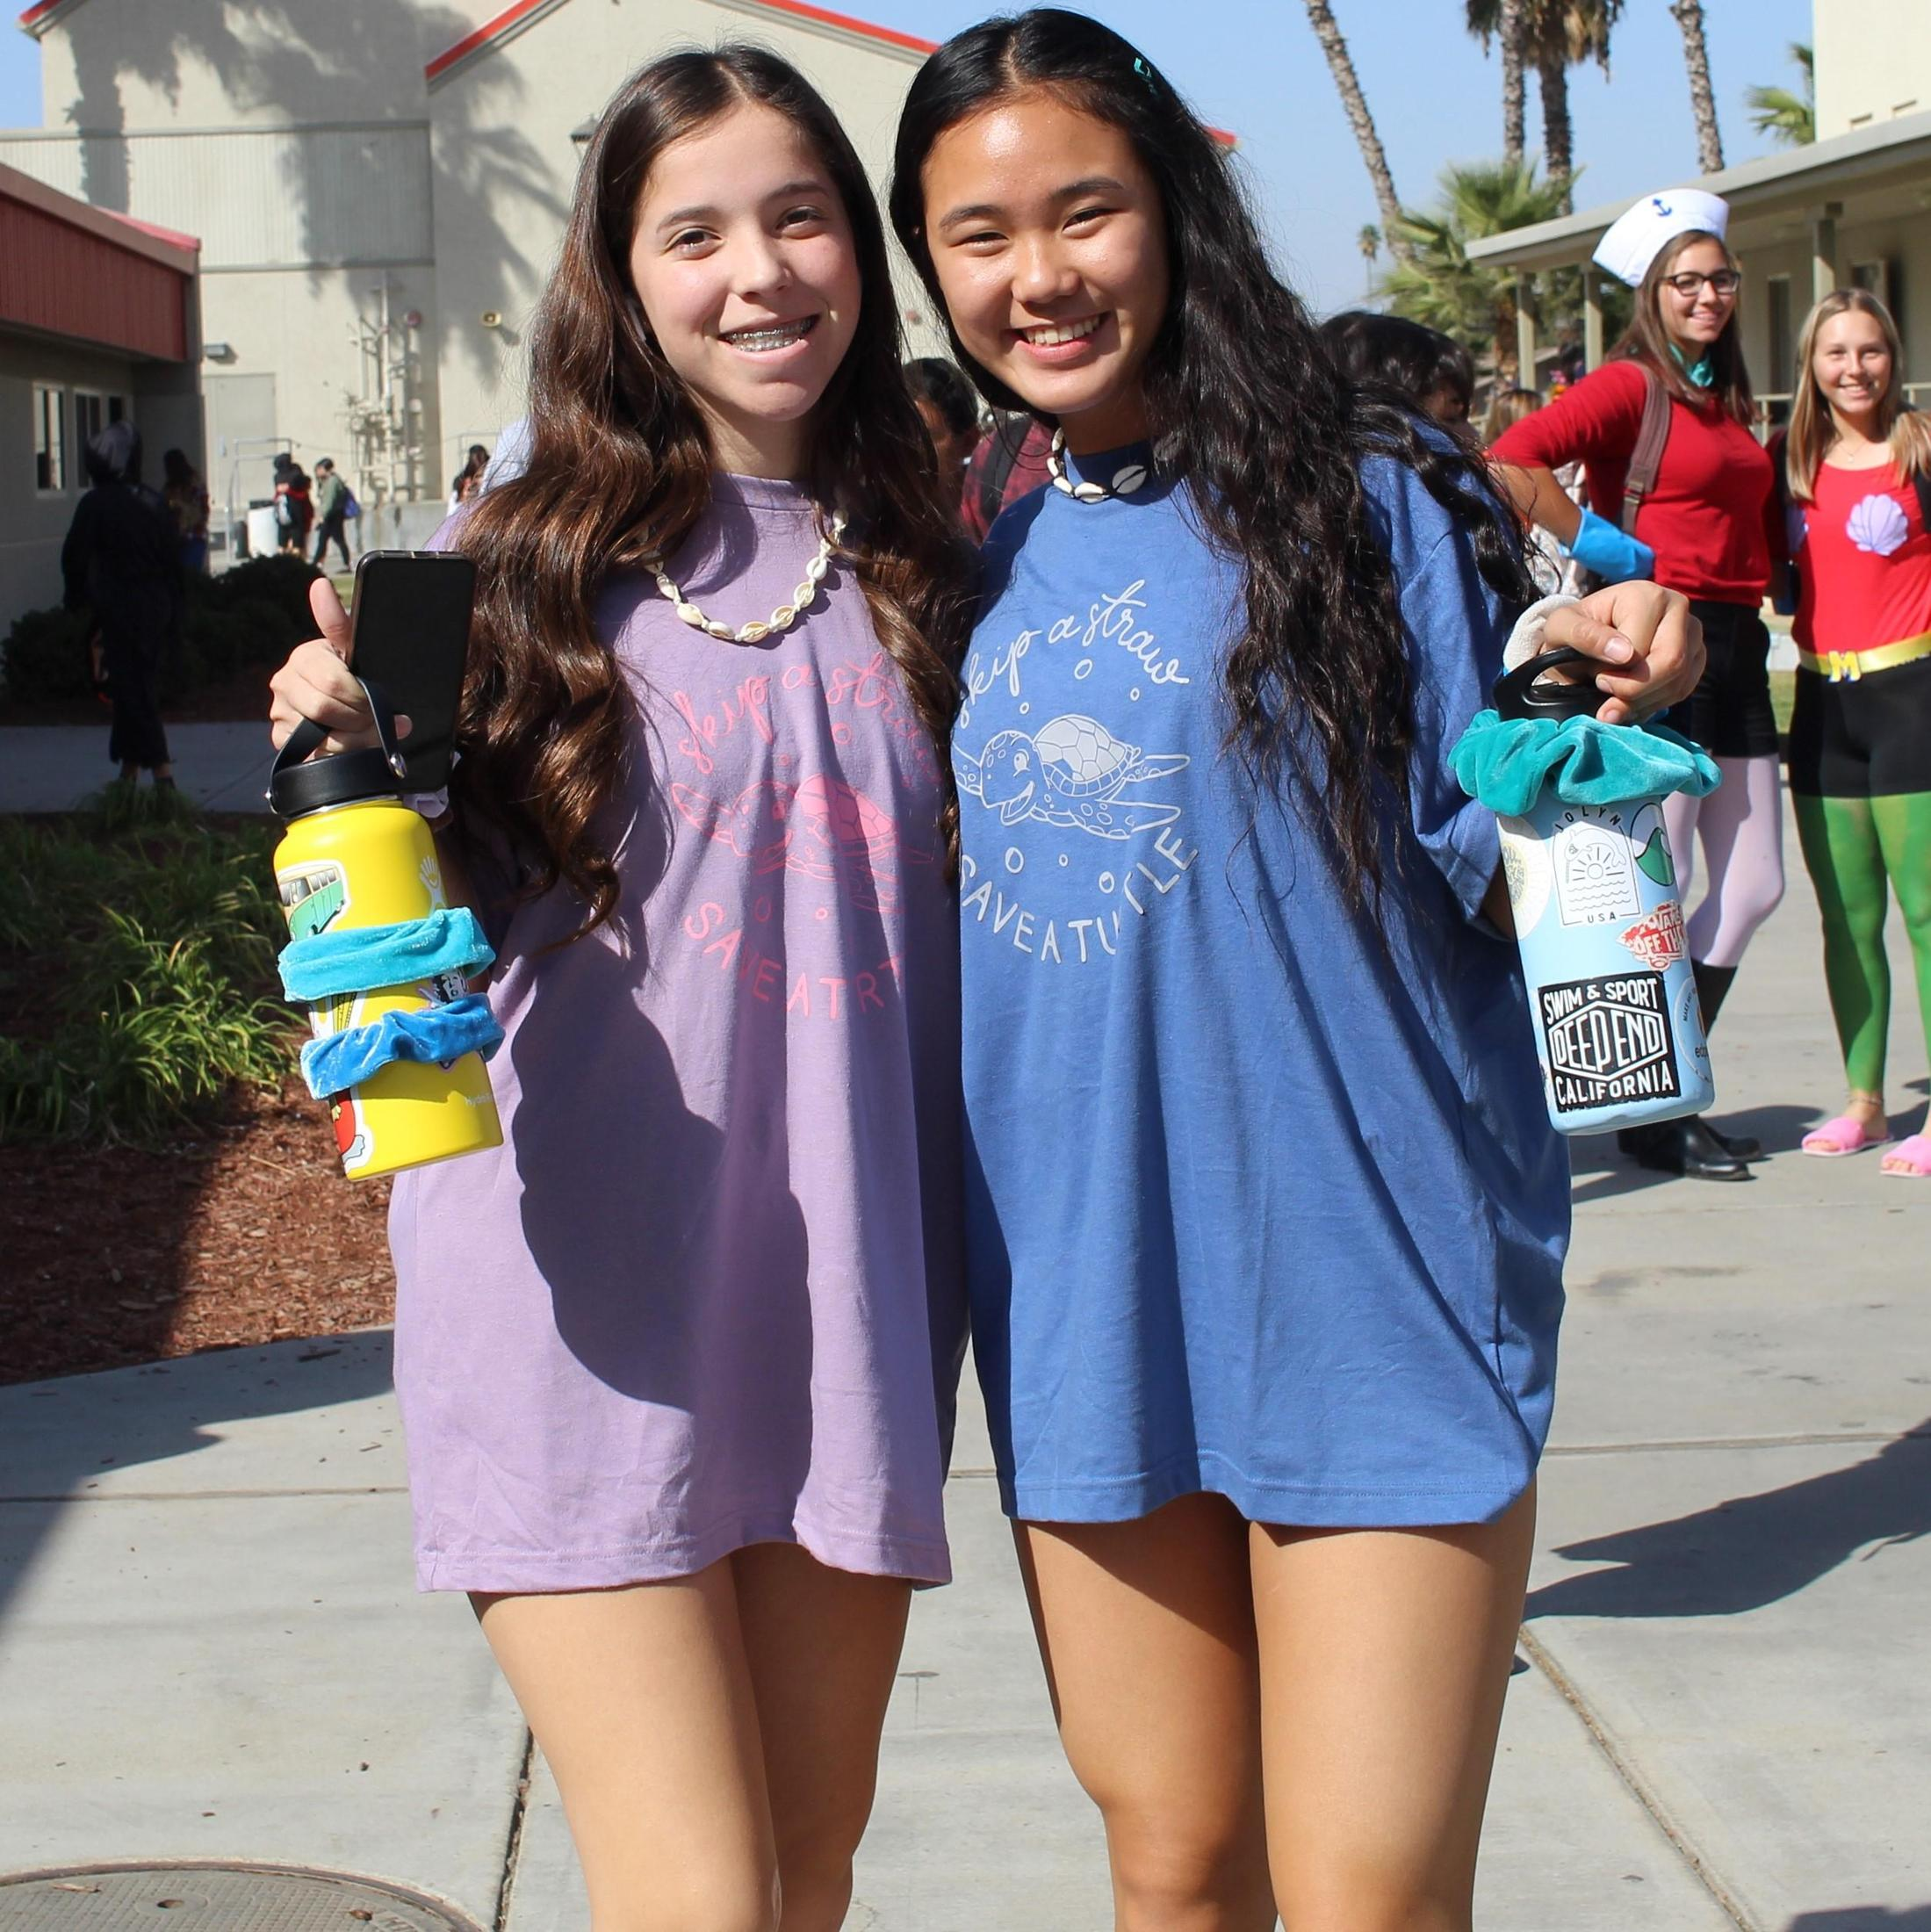 Andrea Carranza and Hahna Song dressed as V.S.C.O. girls, Kaely Sabin and Sierra Calvert dressed as spongebob characters